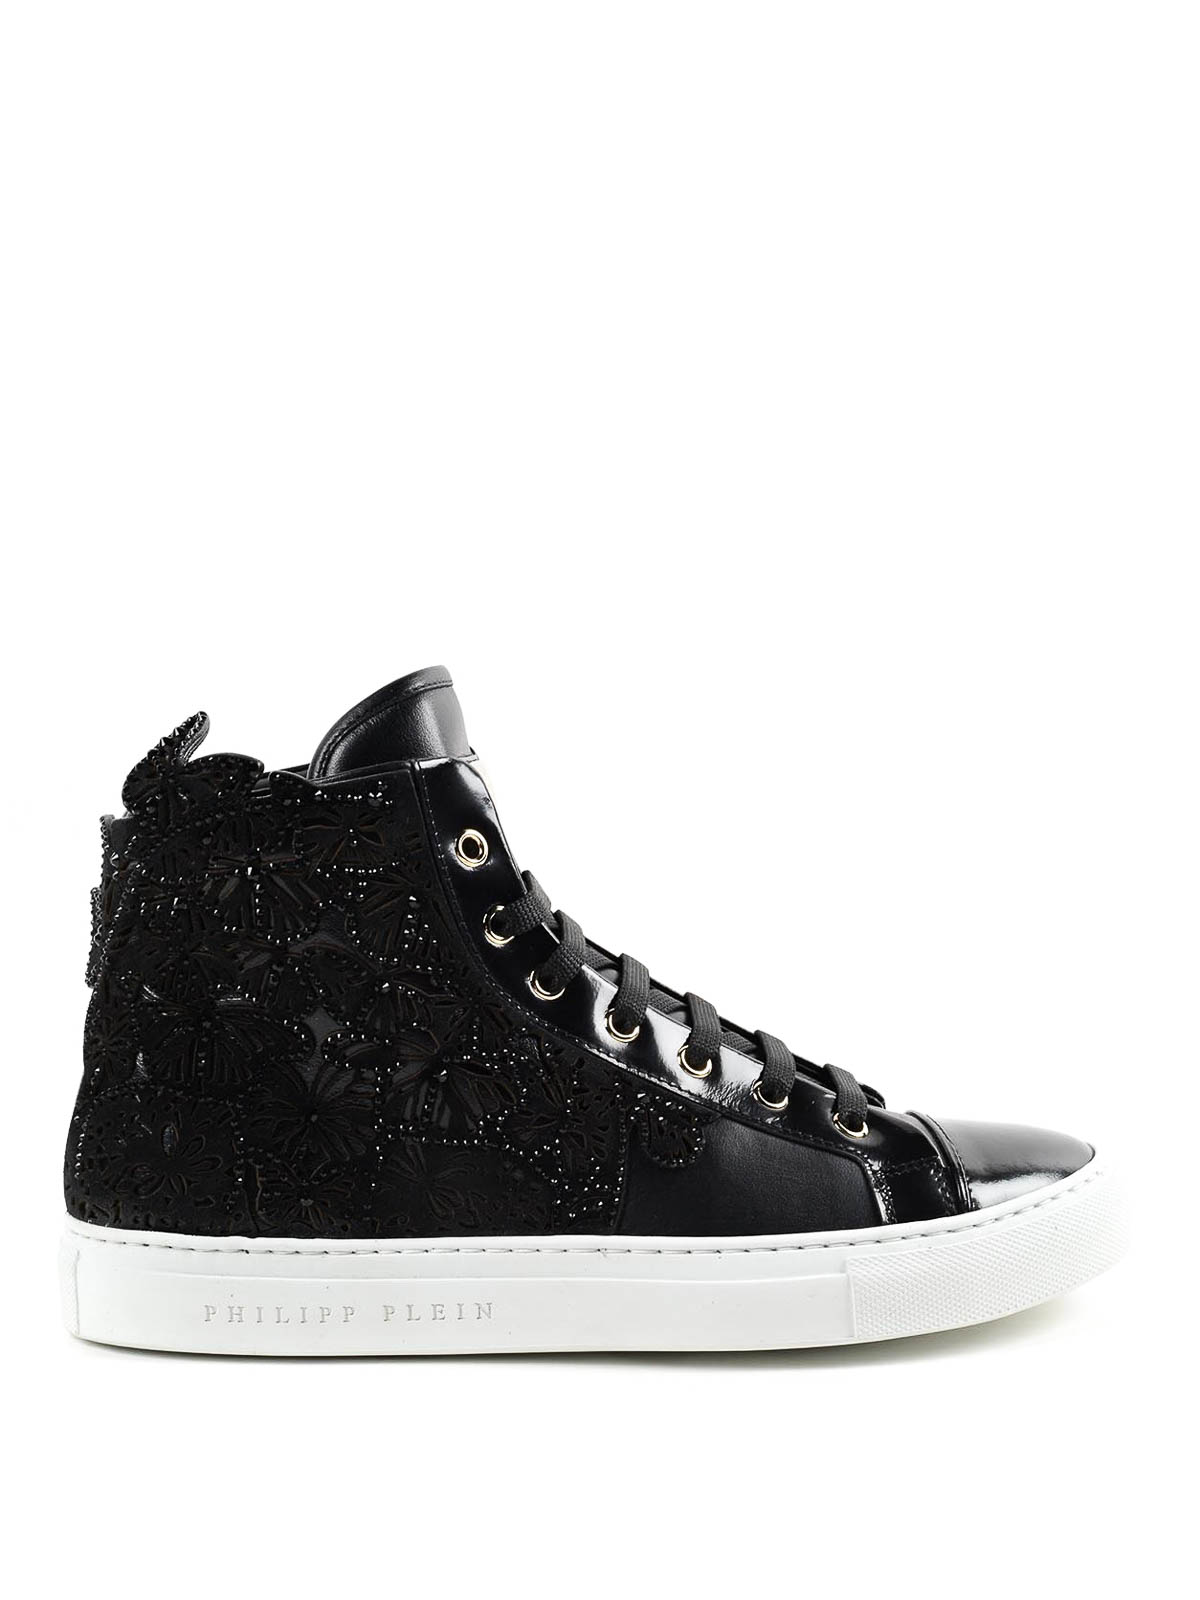 Philipp Plein High Top Sneakers Trainers Sw161459 1 02